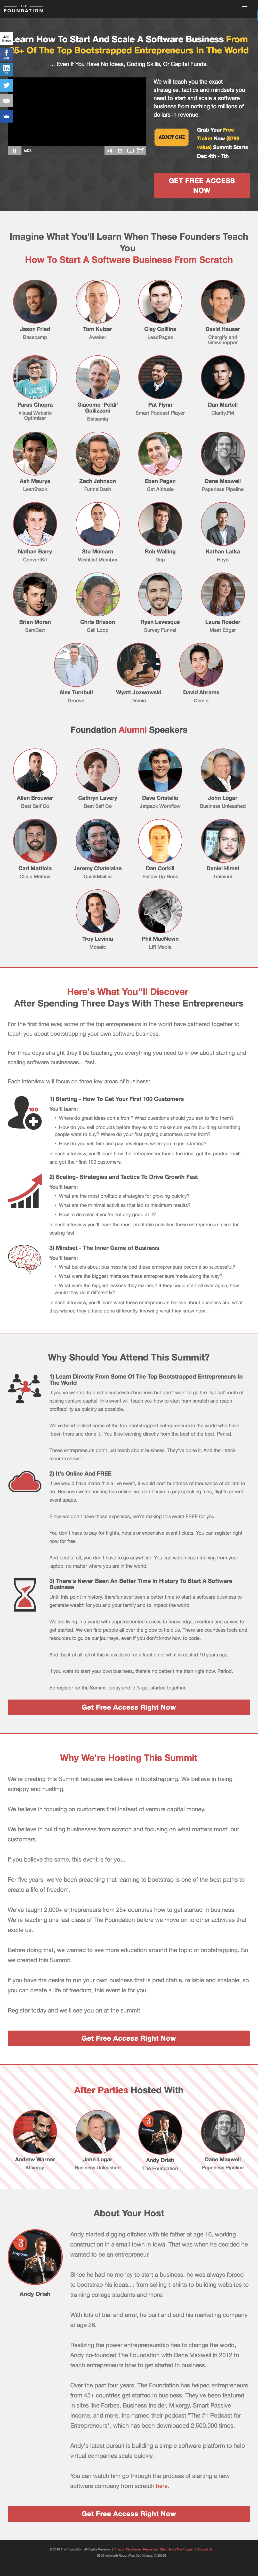 The Foundation Software Summit